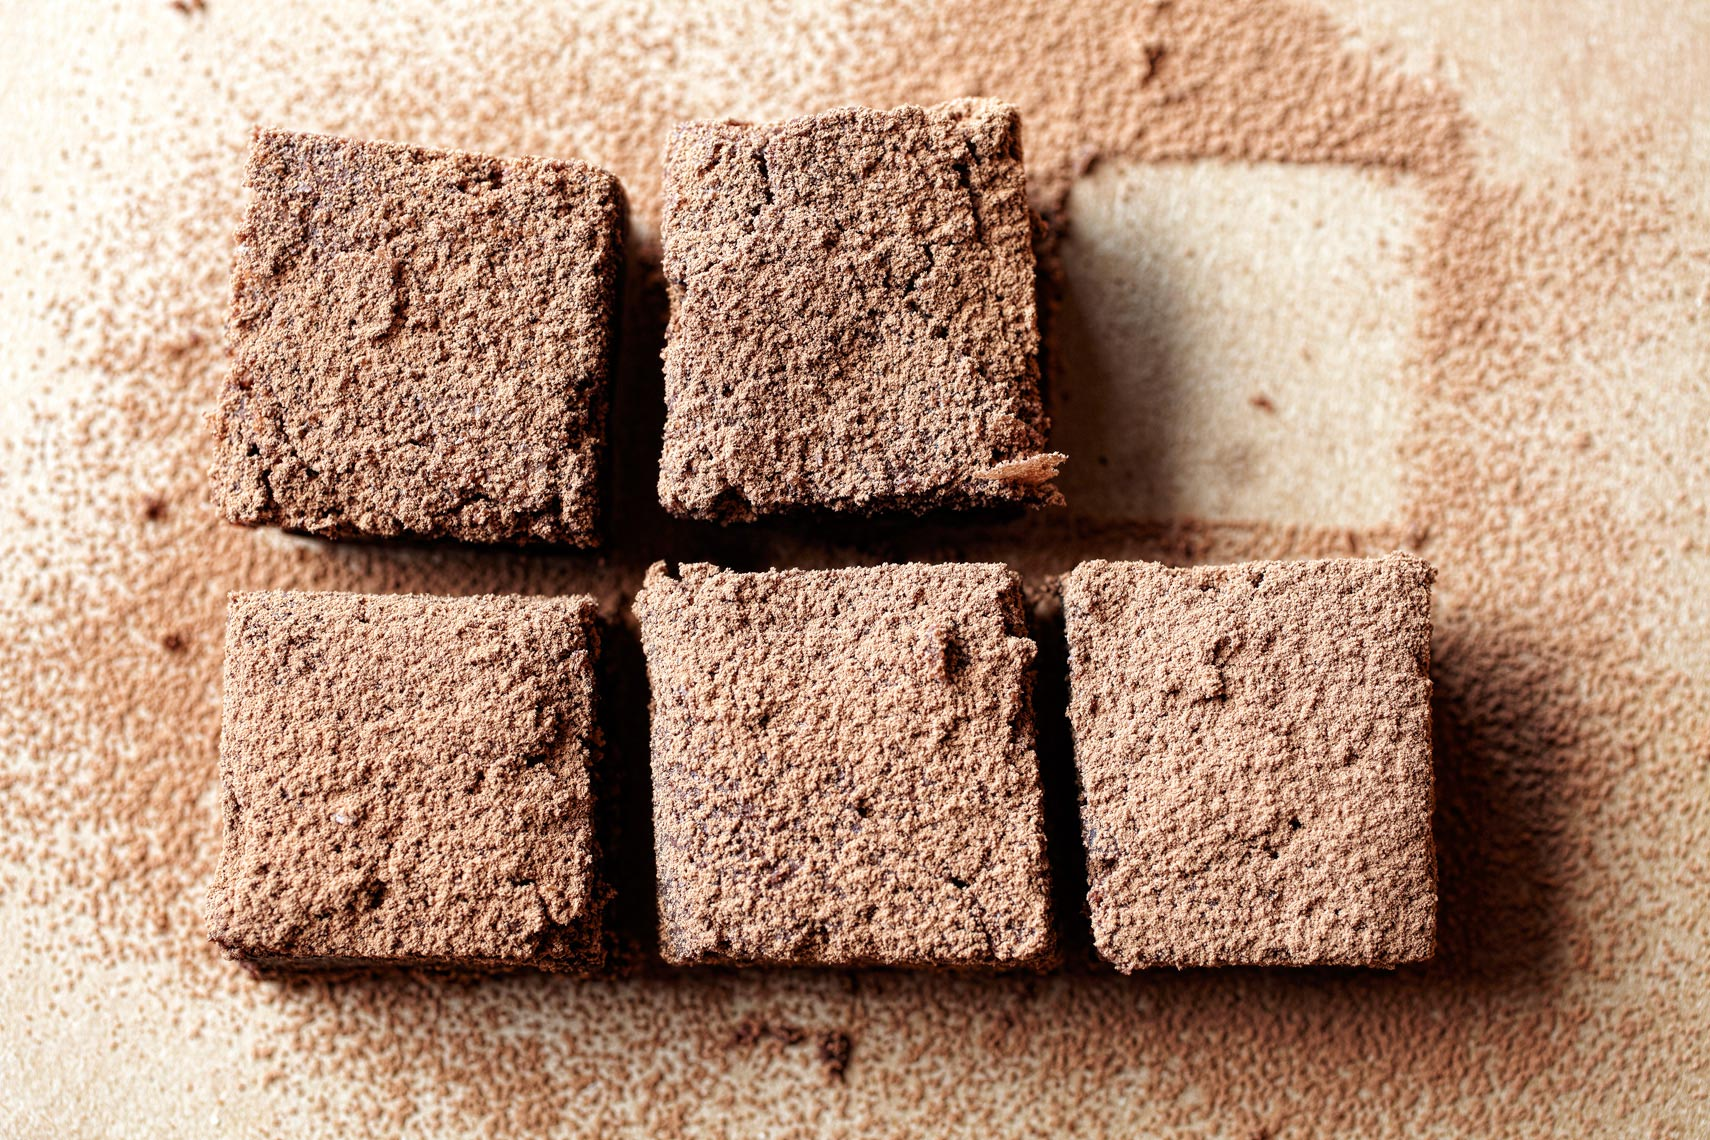 Marx-food-photography-chocolate-brownies